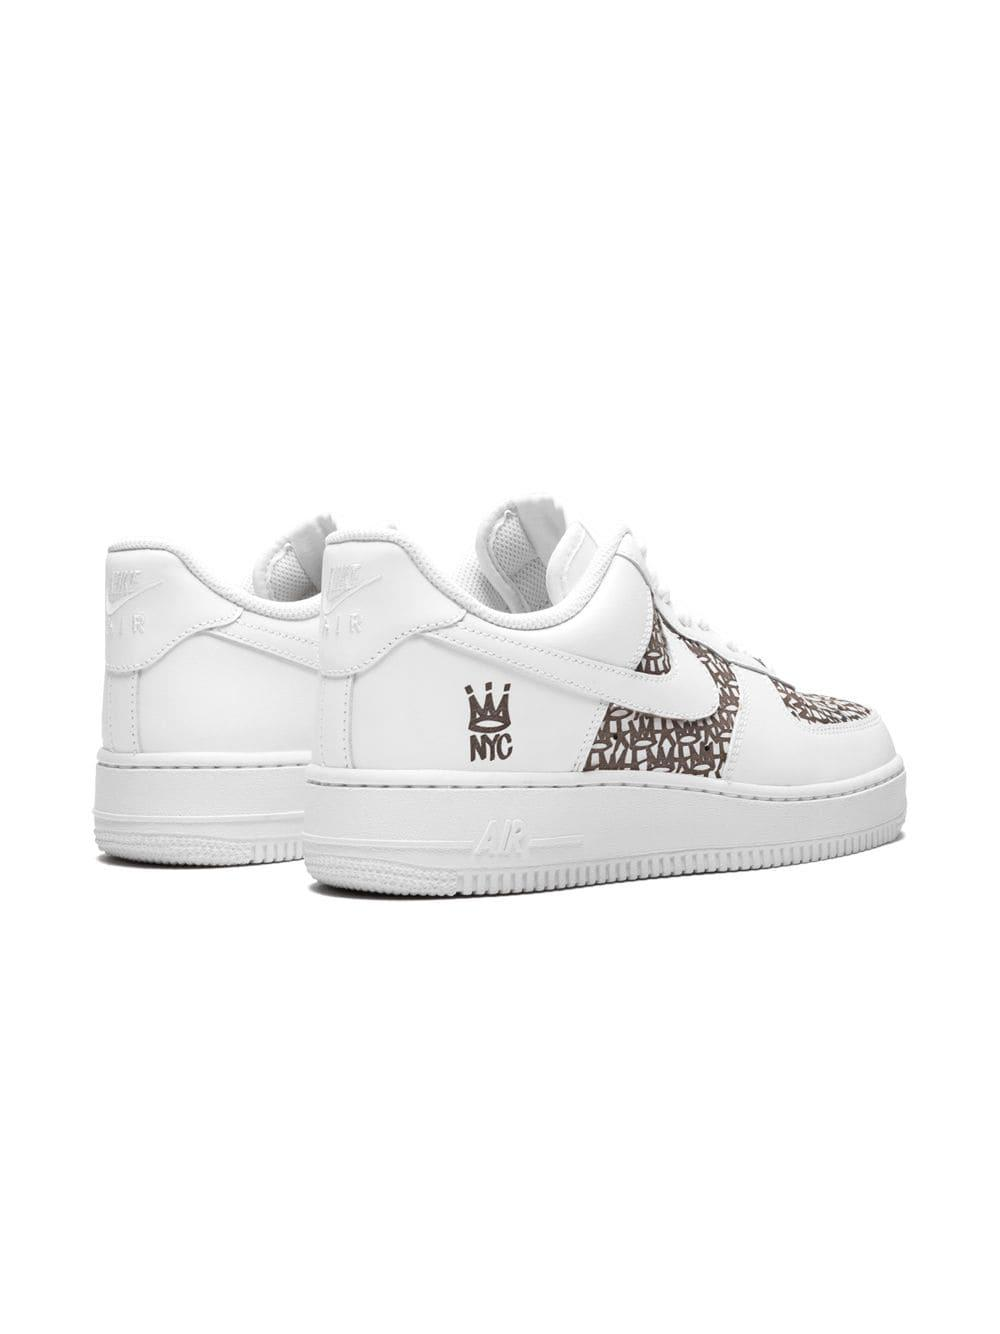 ebay nike white air force 1 laser sneakers for men lyst. view fullscreen  67270 5a790 3a91e3d1fb2f